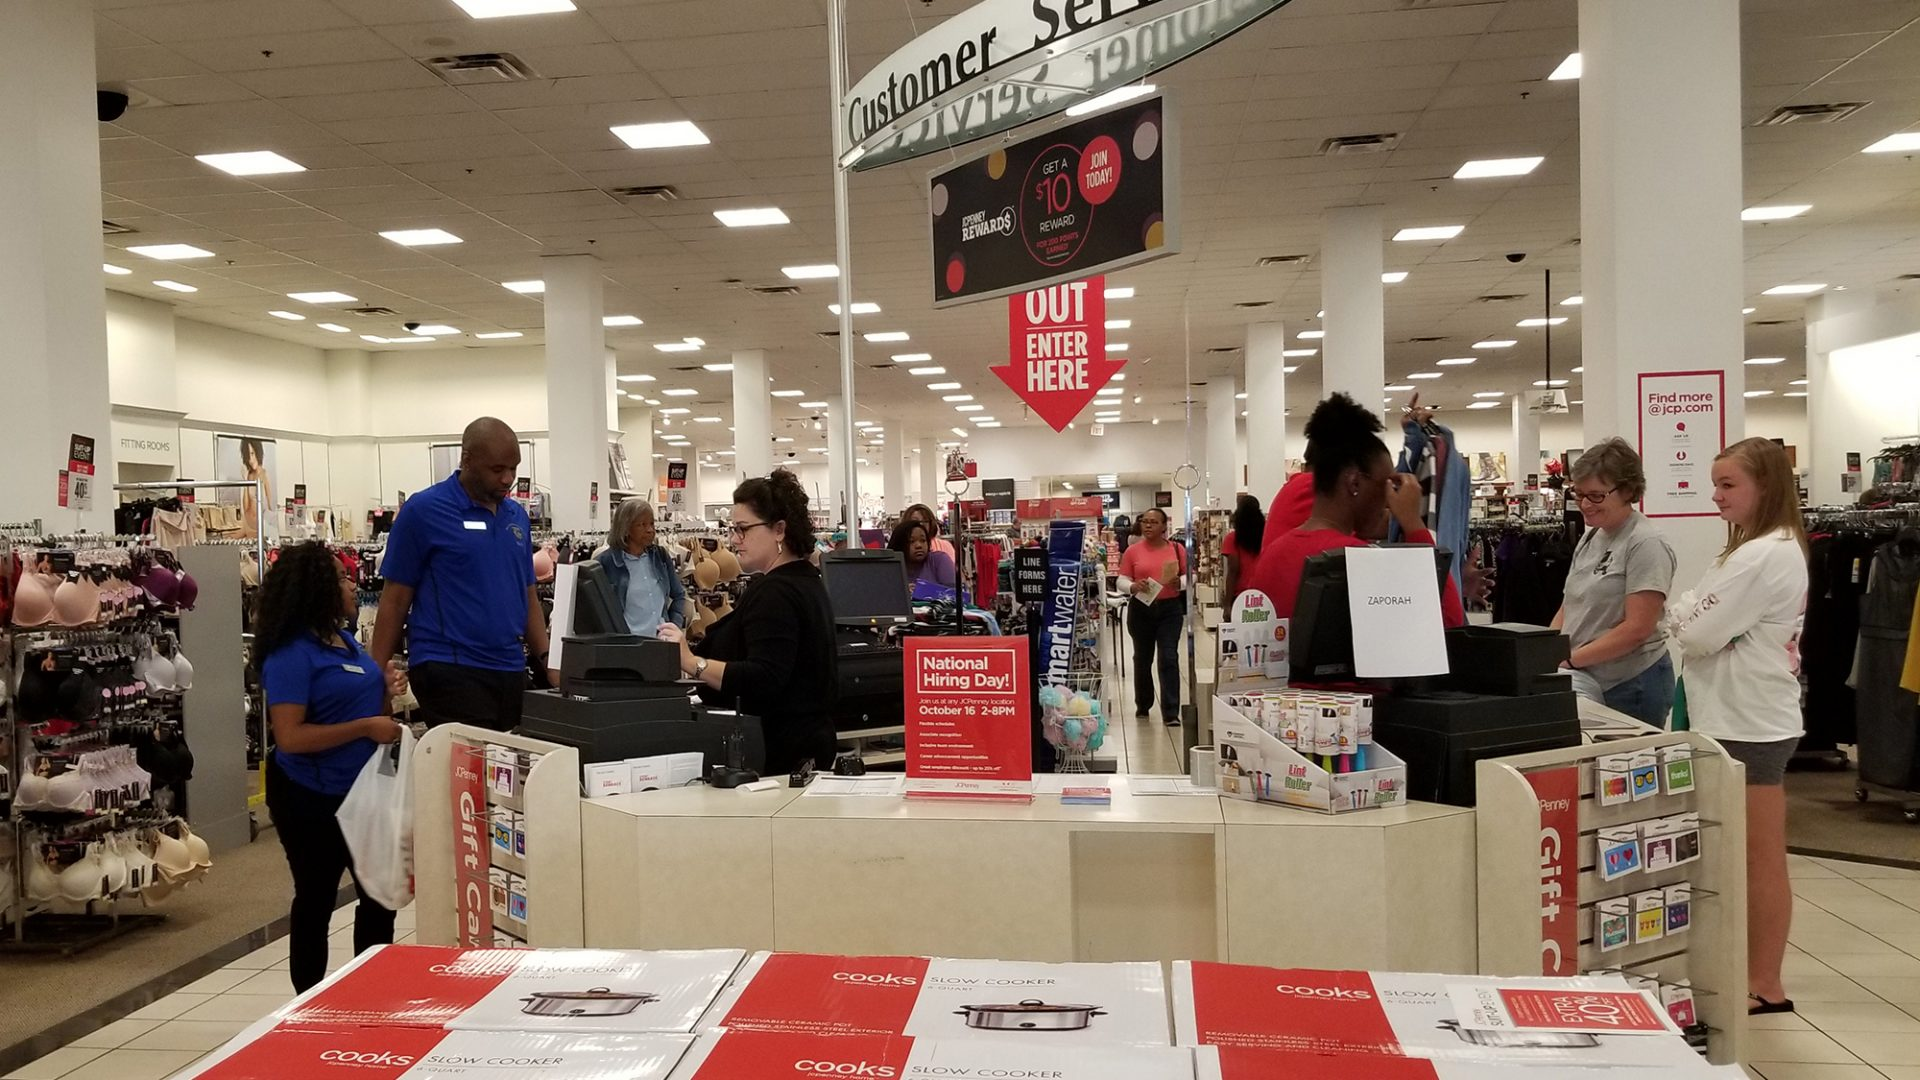 PCC students check out at the cash register during the exclusive JCPenney shopping event Oct. 14.